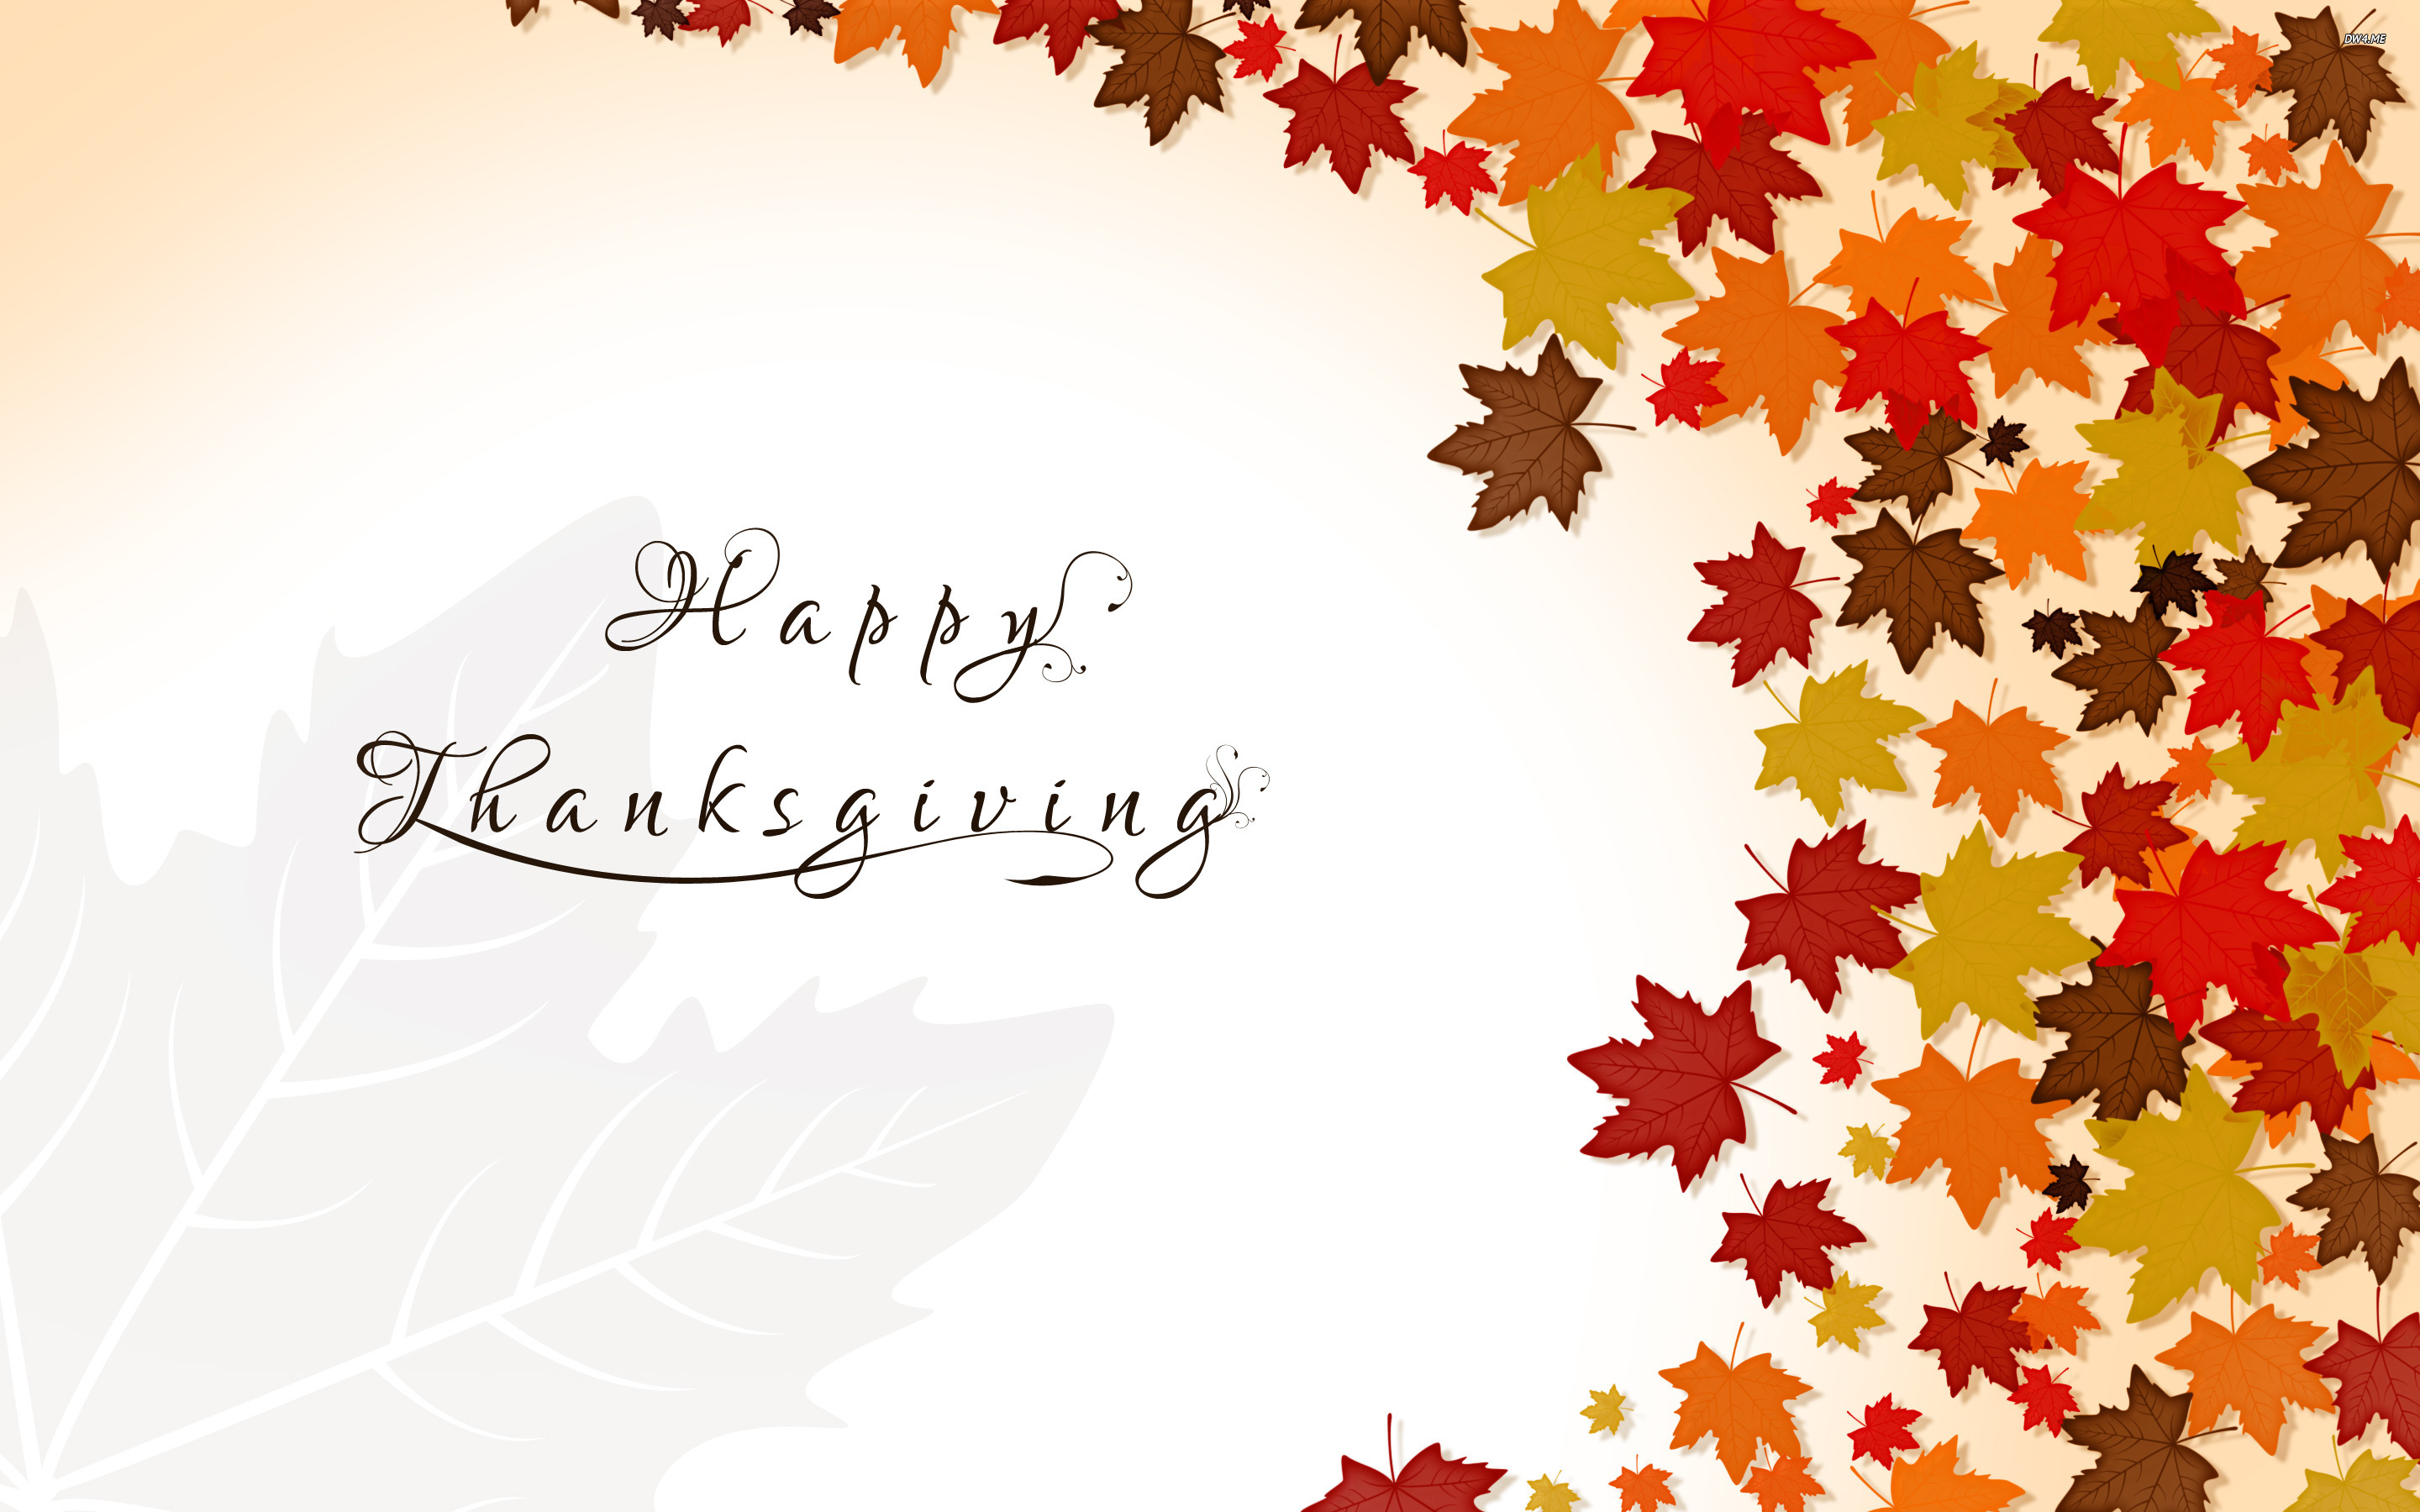 Holiday Happy Thanksgiving Wallpaper Red Background 2880x1800